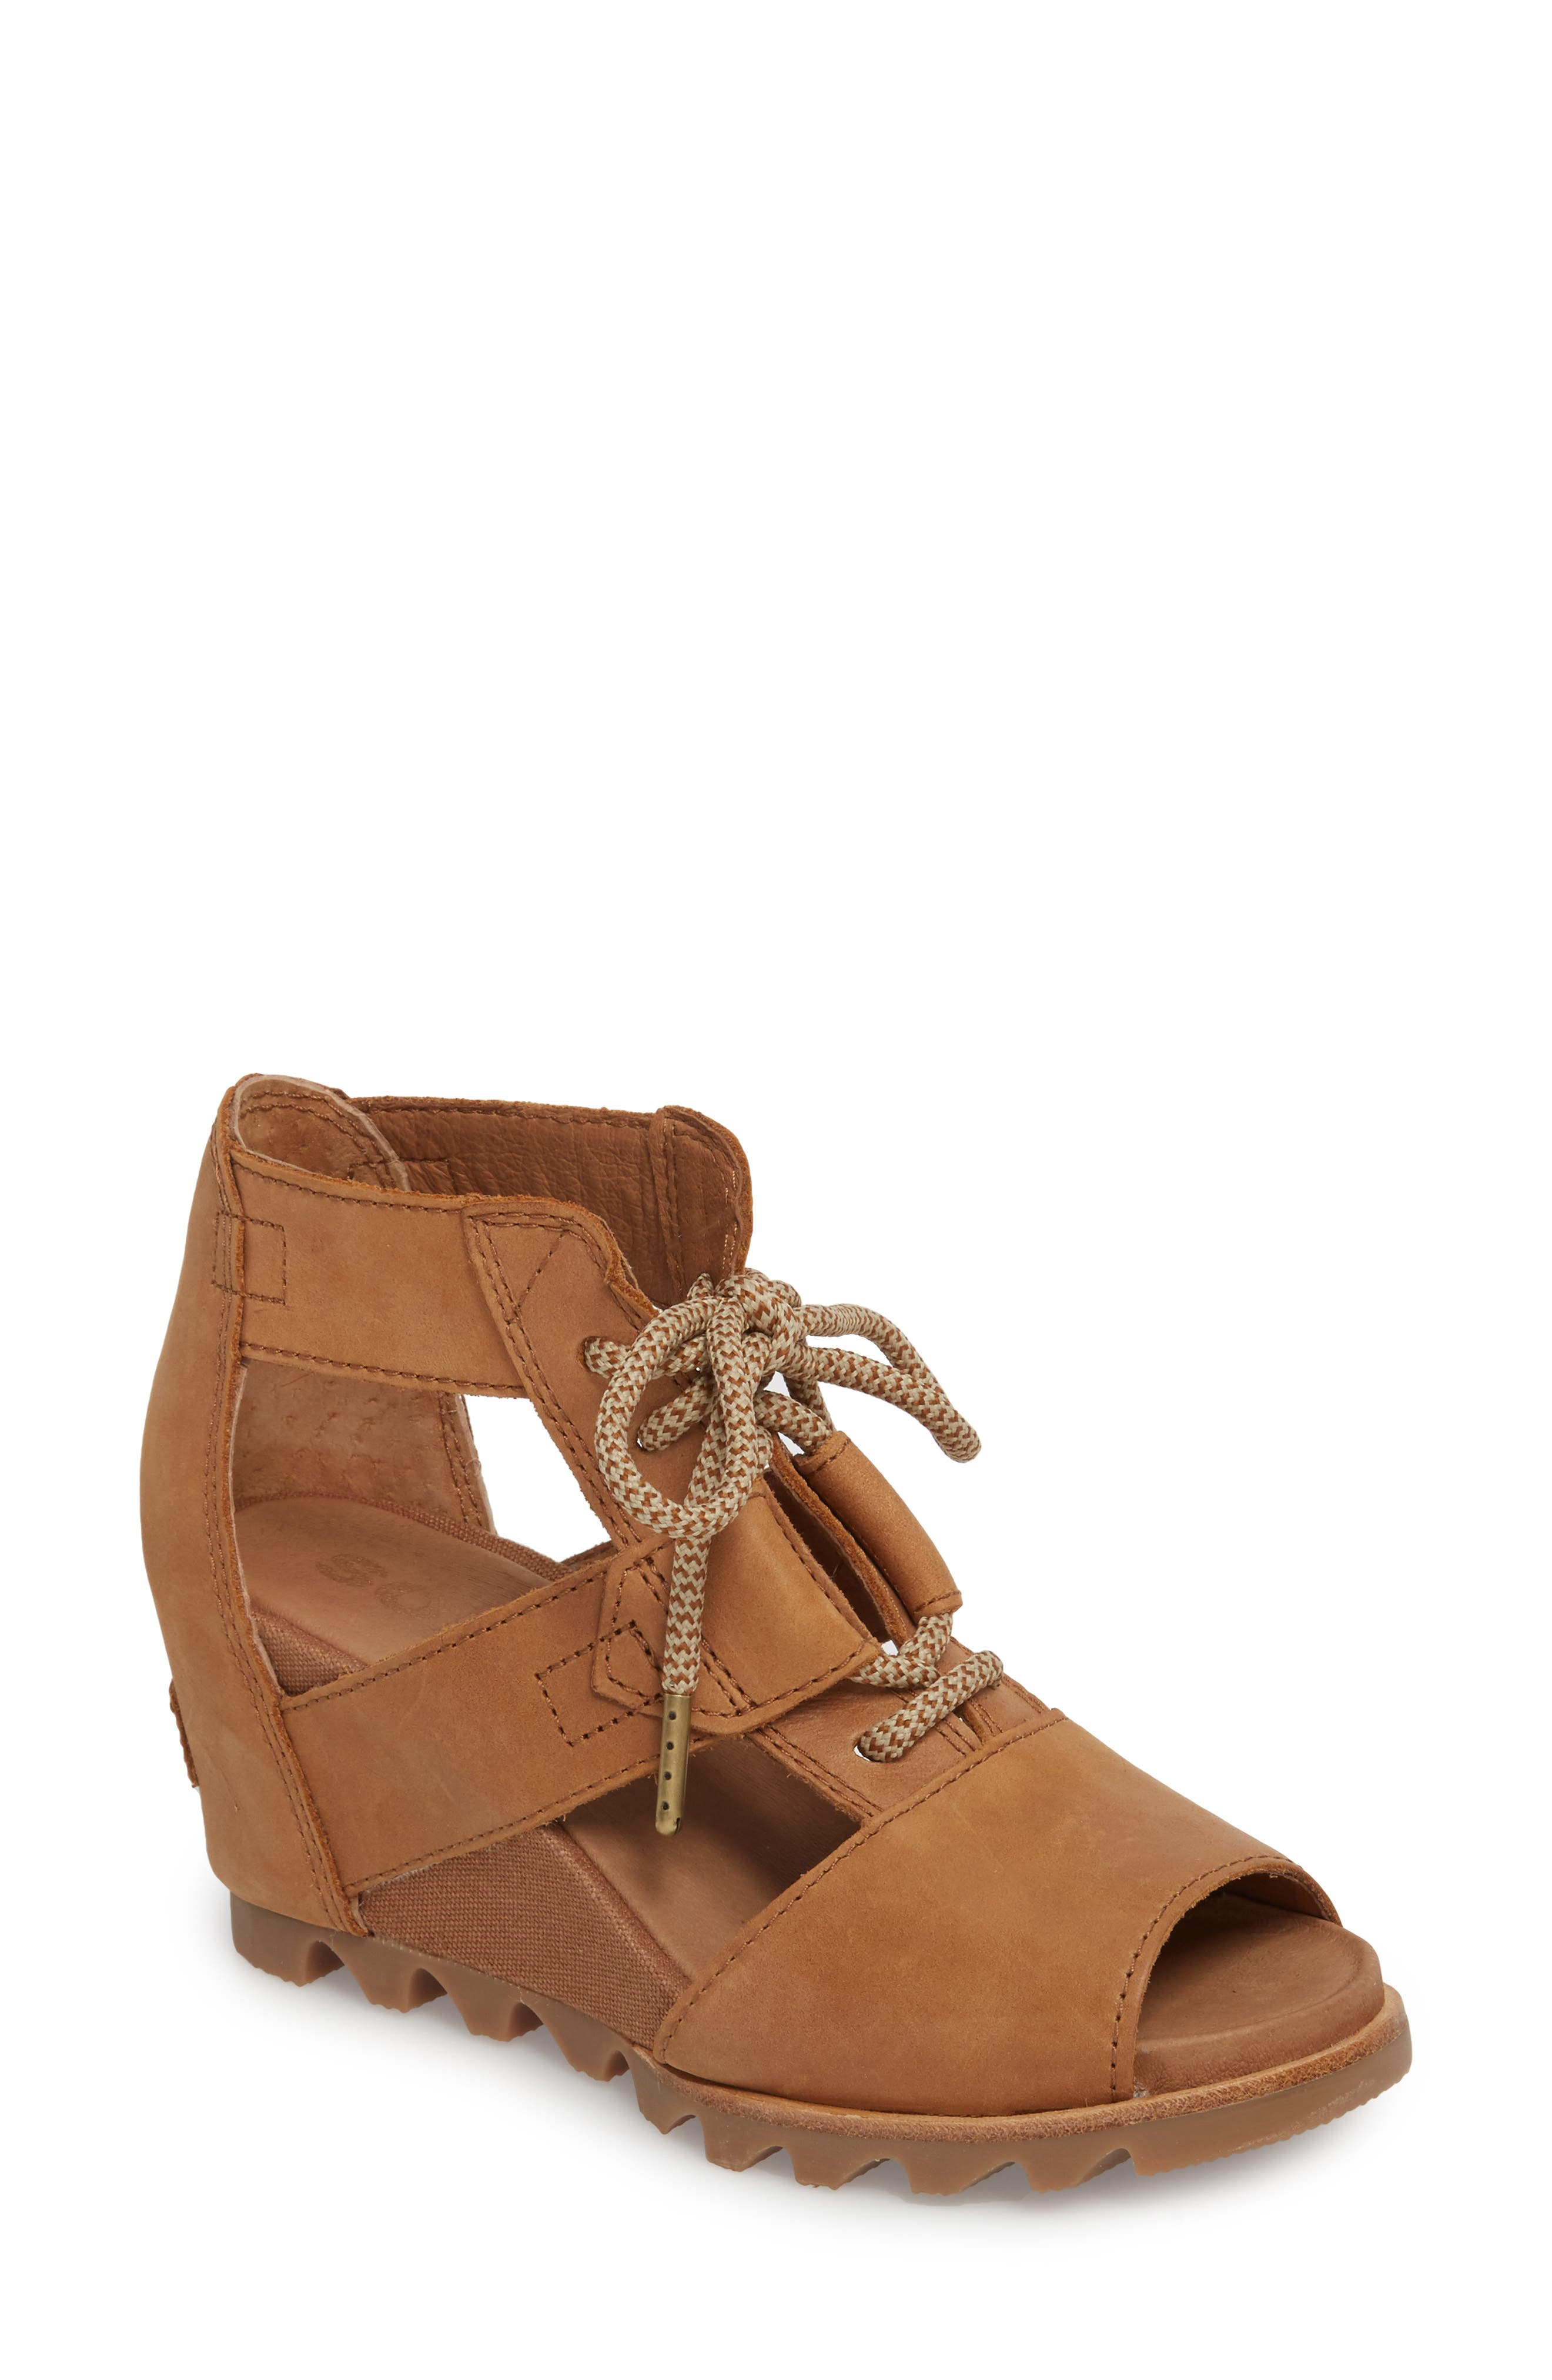 'Joanie' Cage Sandal,                             Main thumbnail 1, color,                             Camel Brown